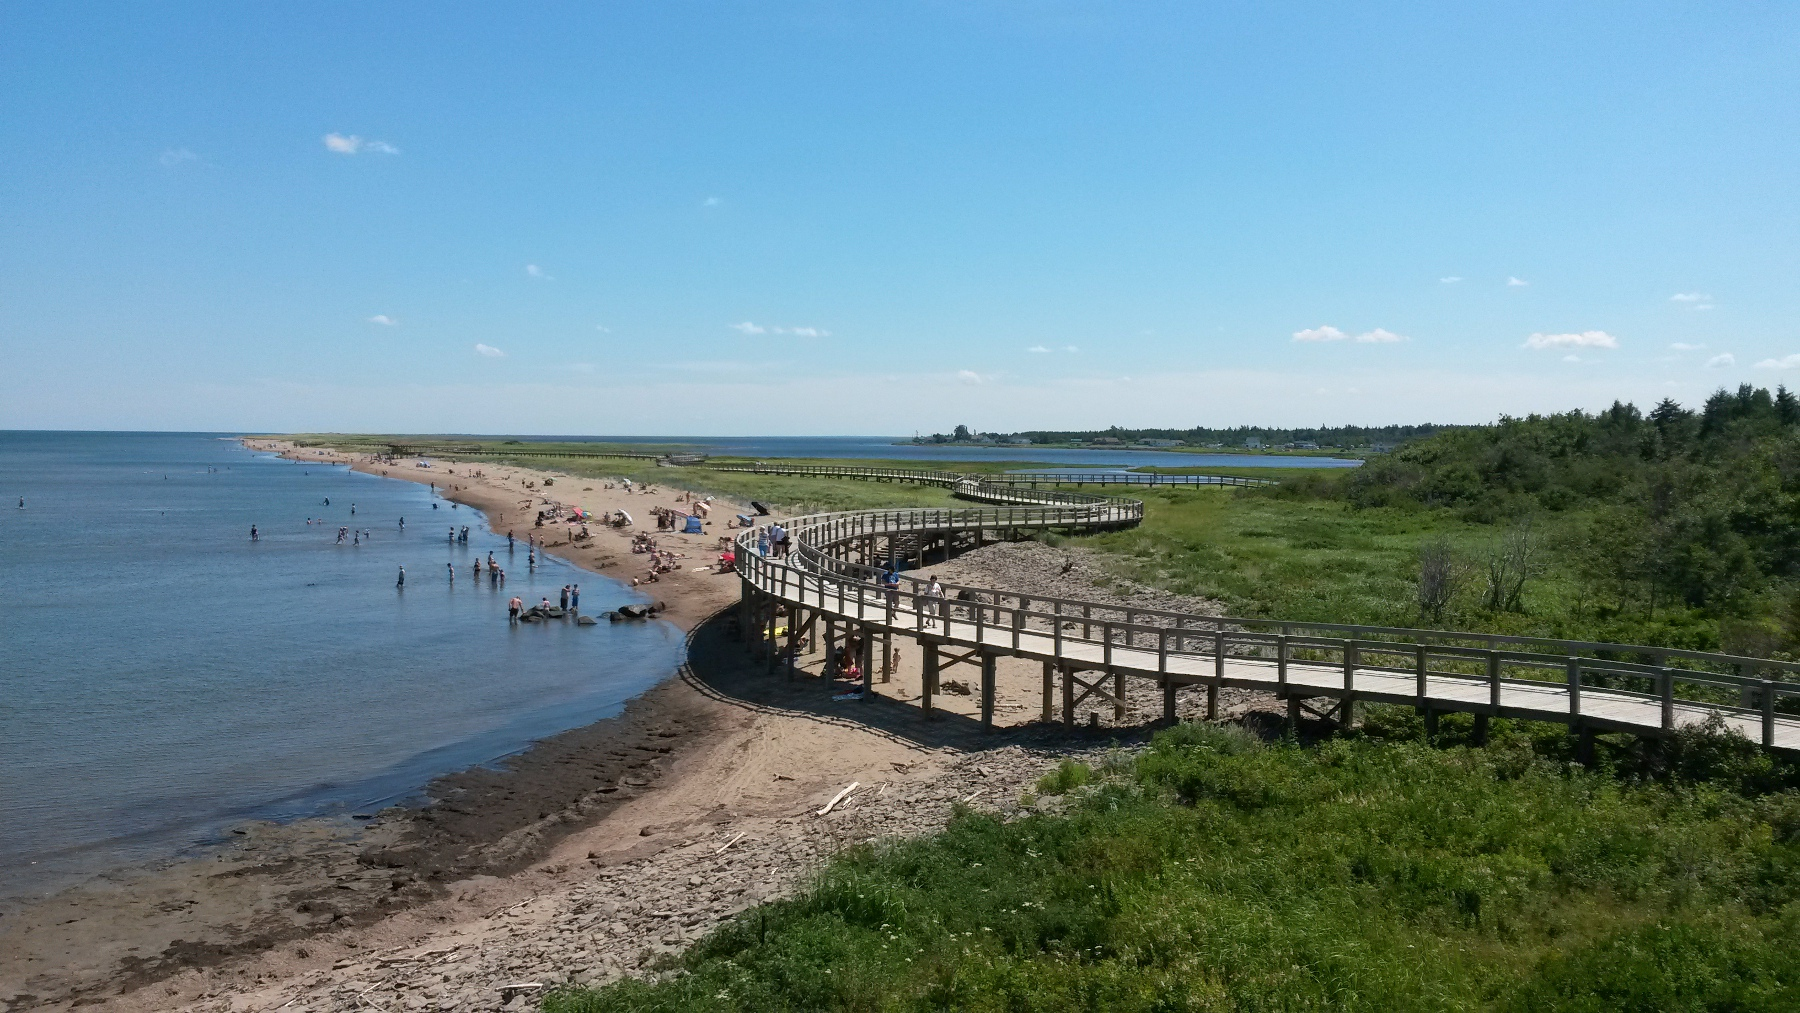 The Bouctouche Dunes boardwalk